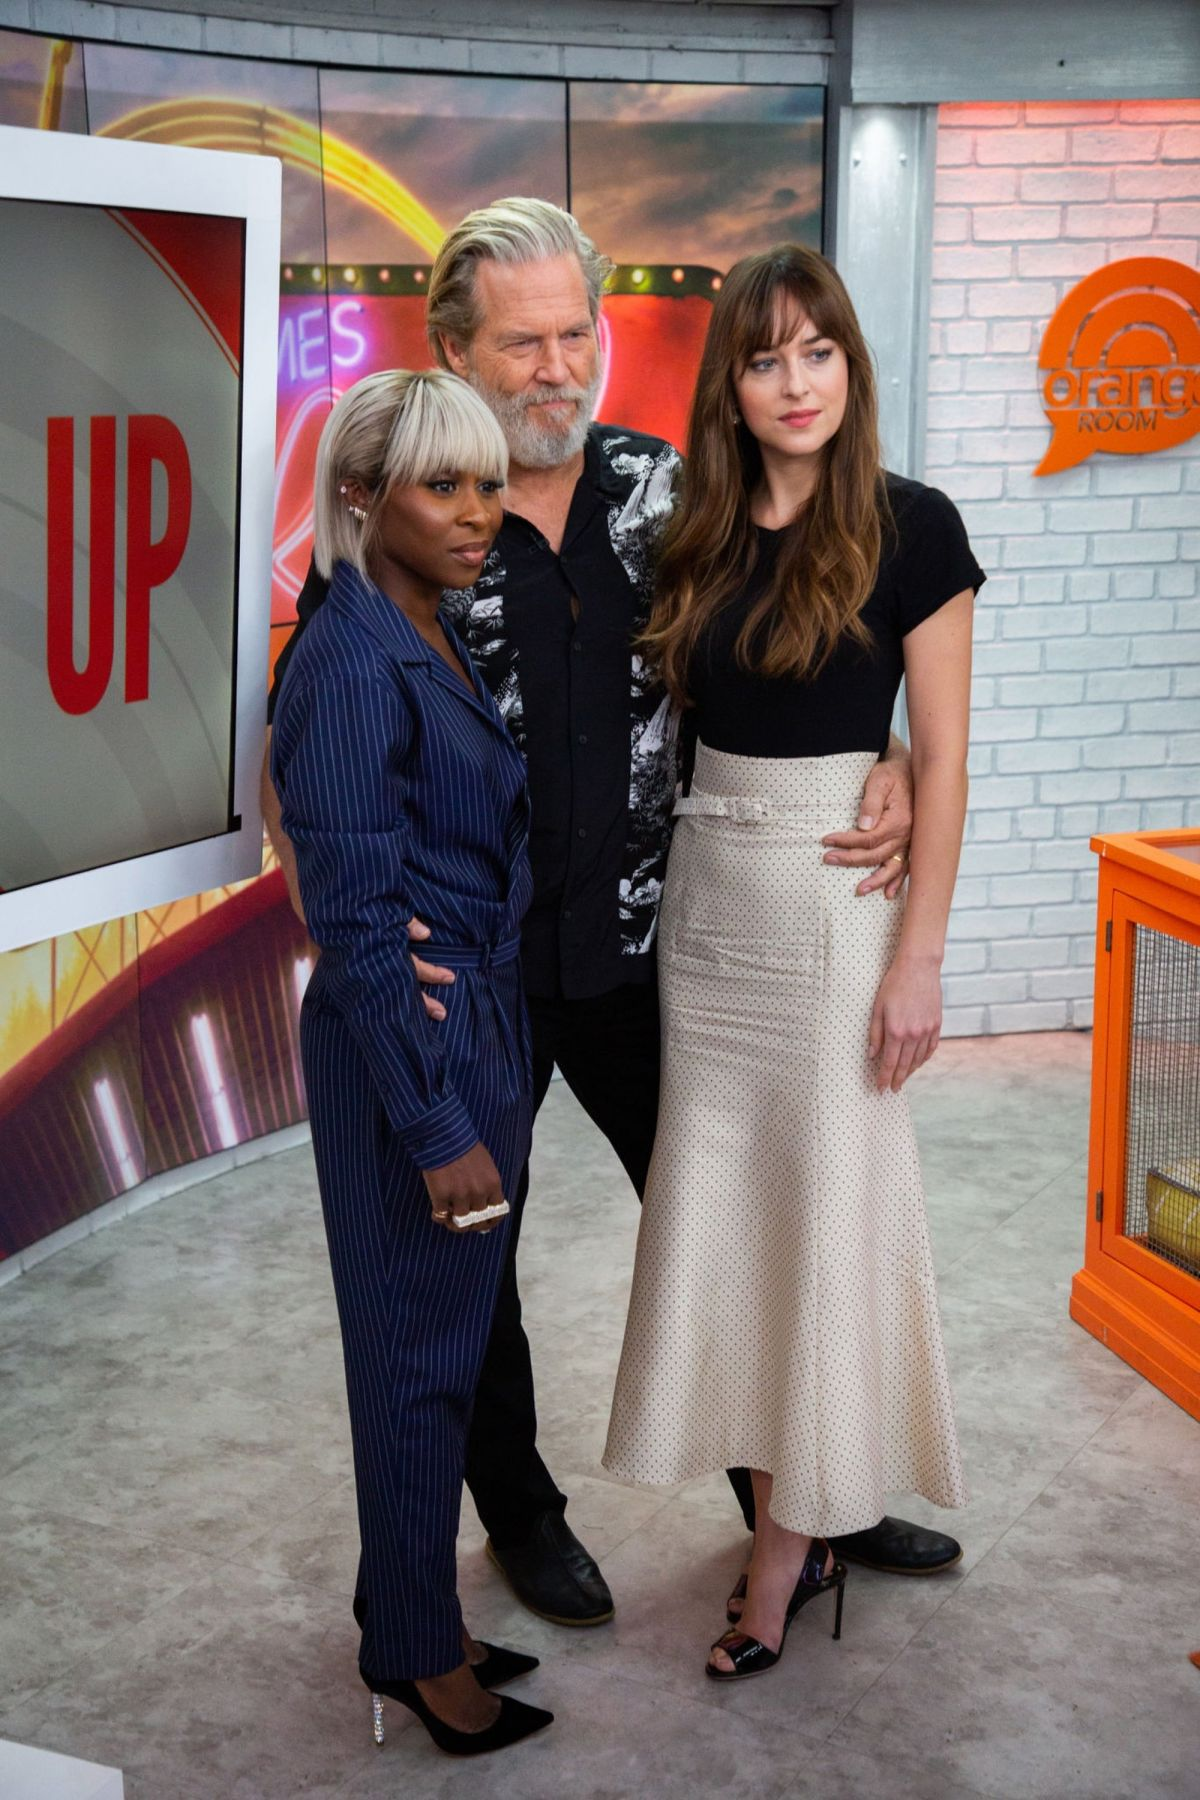 Dakota johnson today show in new york city naked (89 photo), Sideboobs Celebrity pics